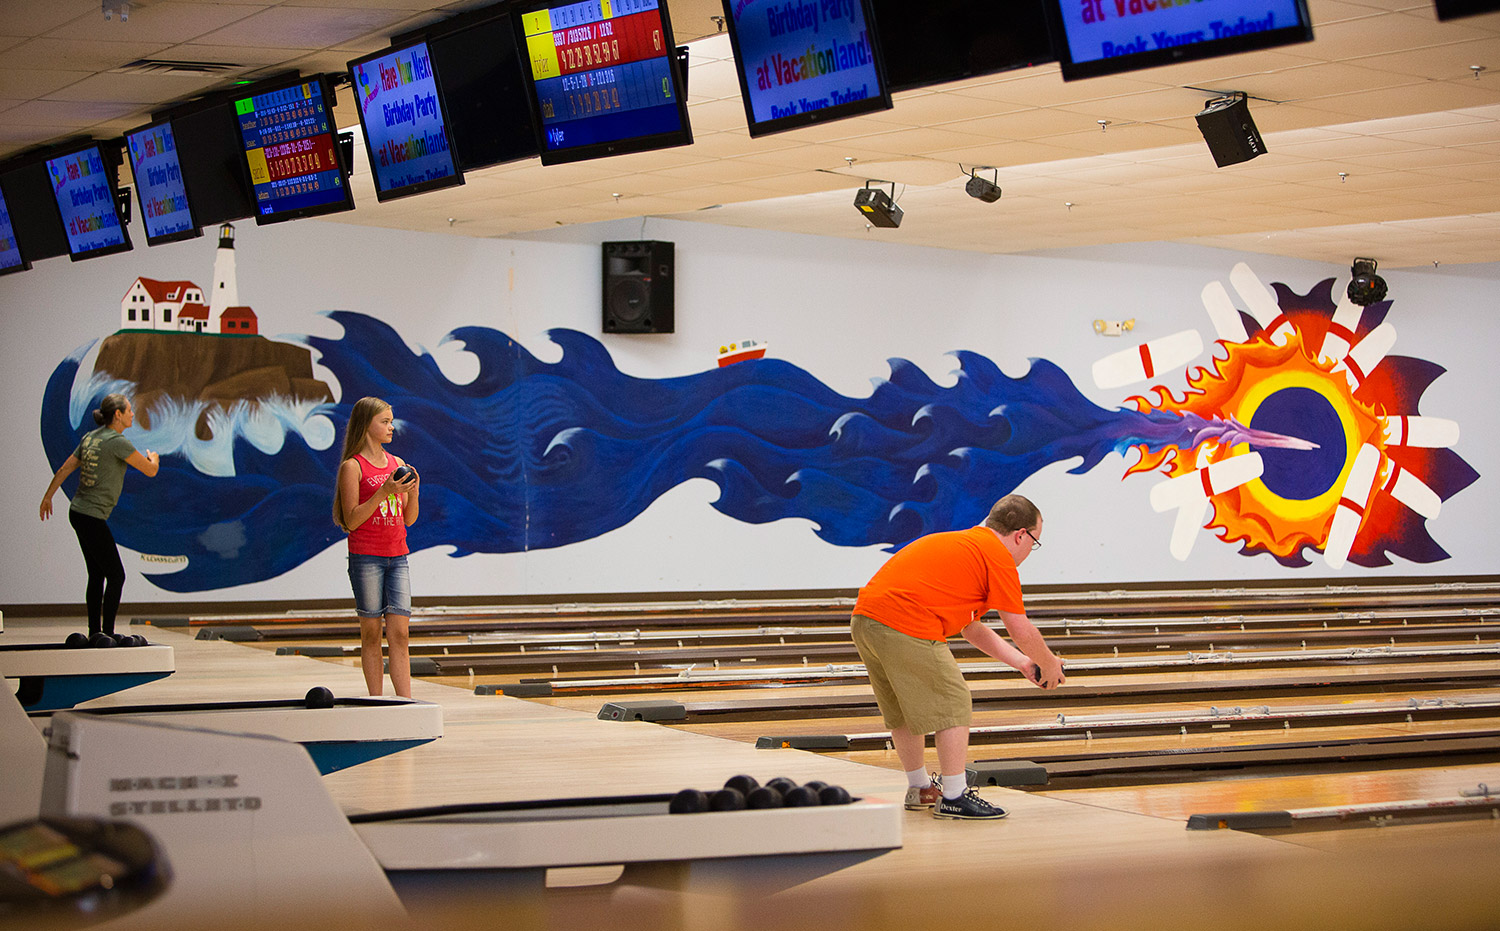 Well-known candlepin bowling alley to close after 34 years